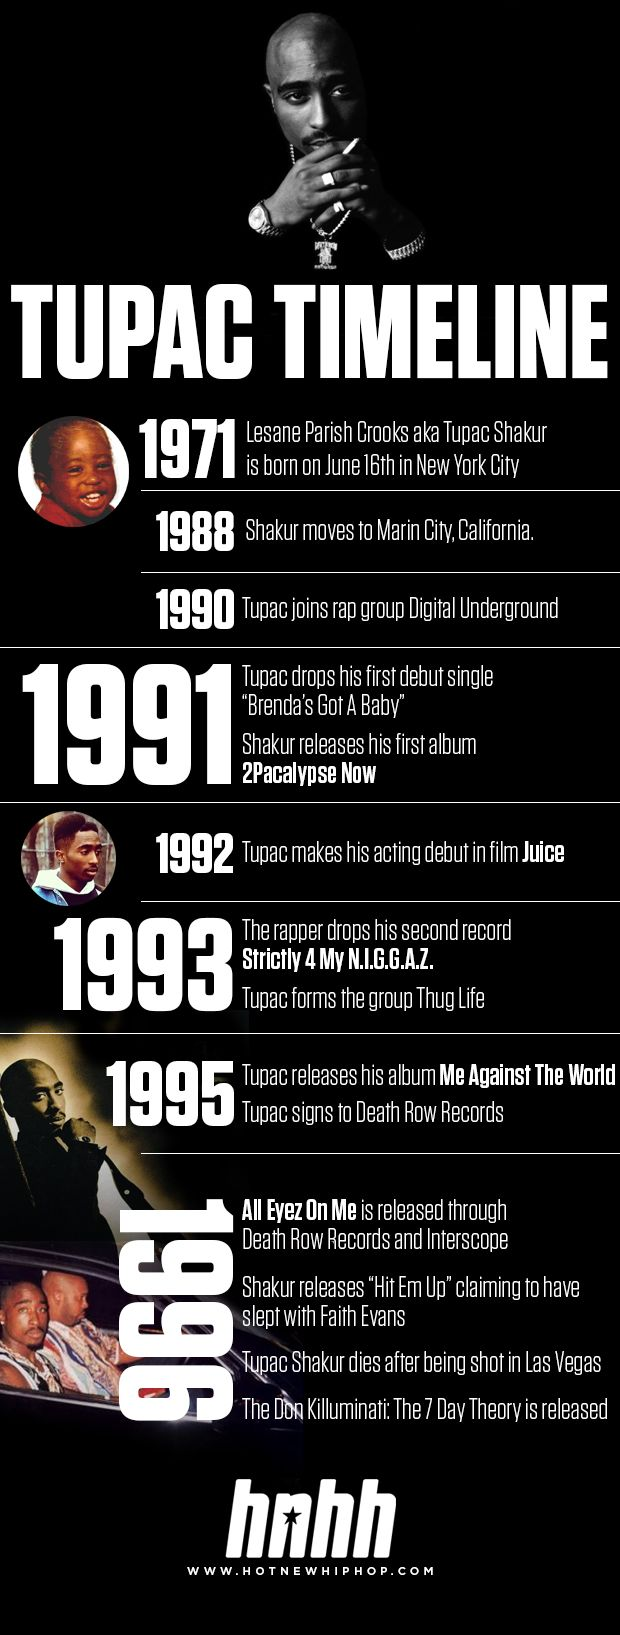 A Look At The Life Of Tupac Shakur.  Today Tupac would have been 43. Tragically, Shakur's life was cut short at the age of just 25 after being shot in Las Vegas. Years on, Tupac is still treasured as a legend in hip hop for his outstanding discography clocking up 11 album and 44 singles.